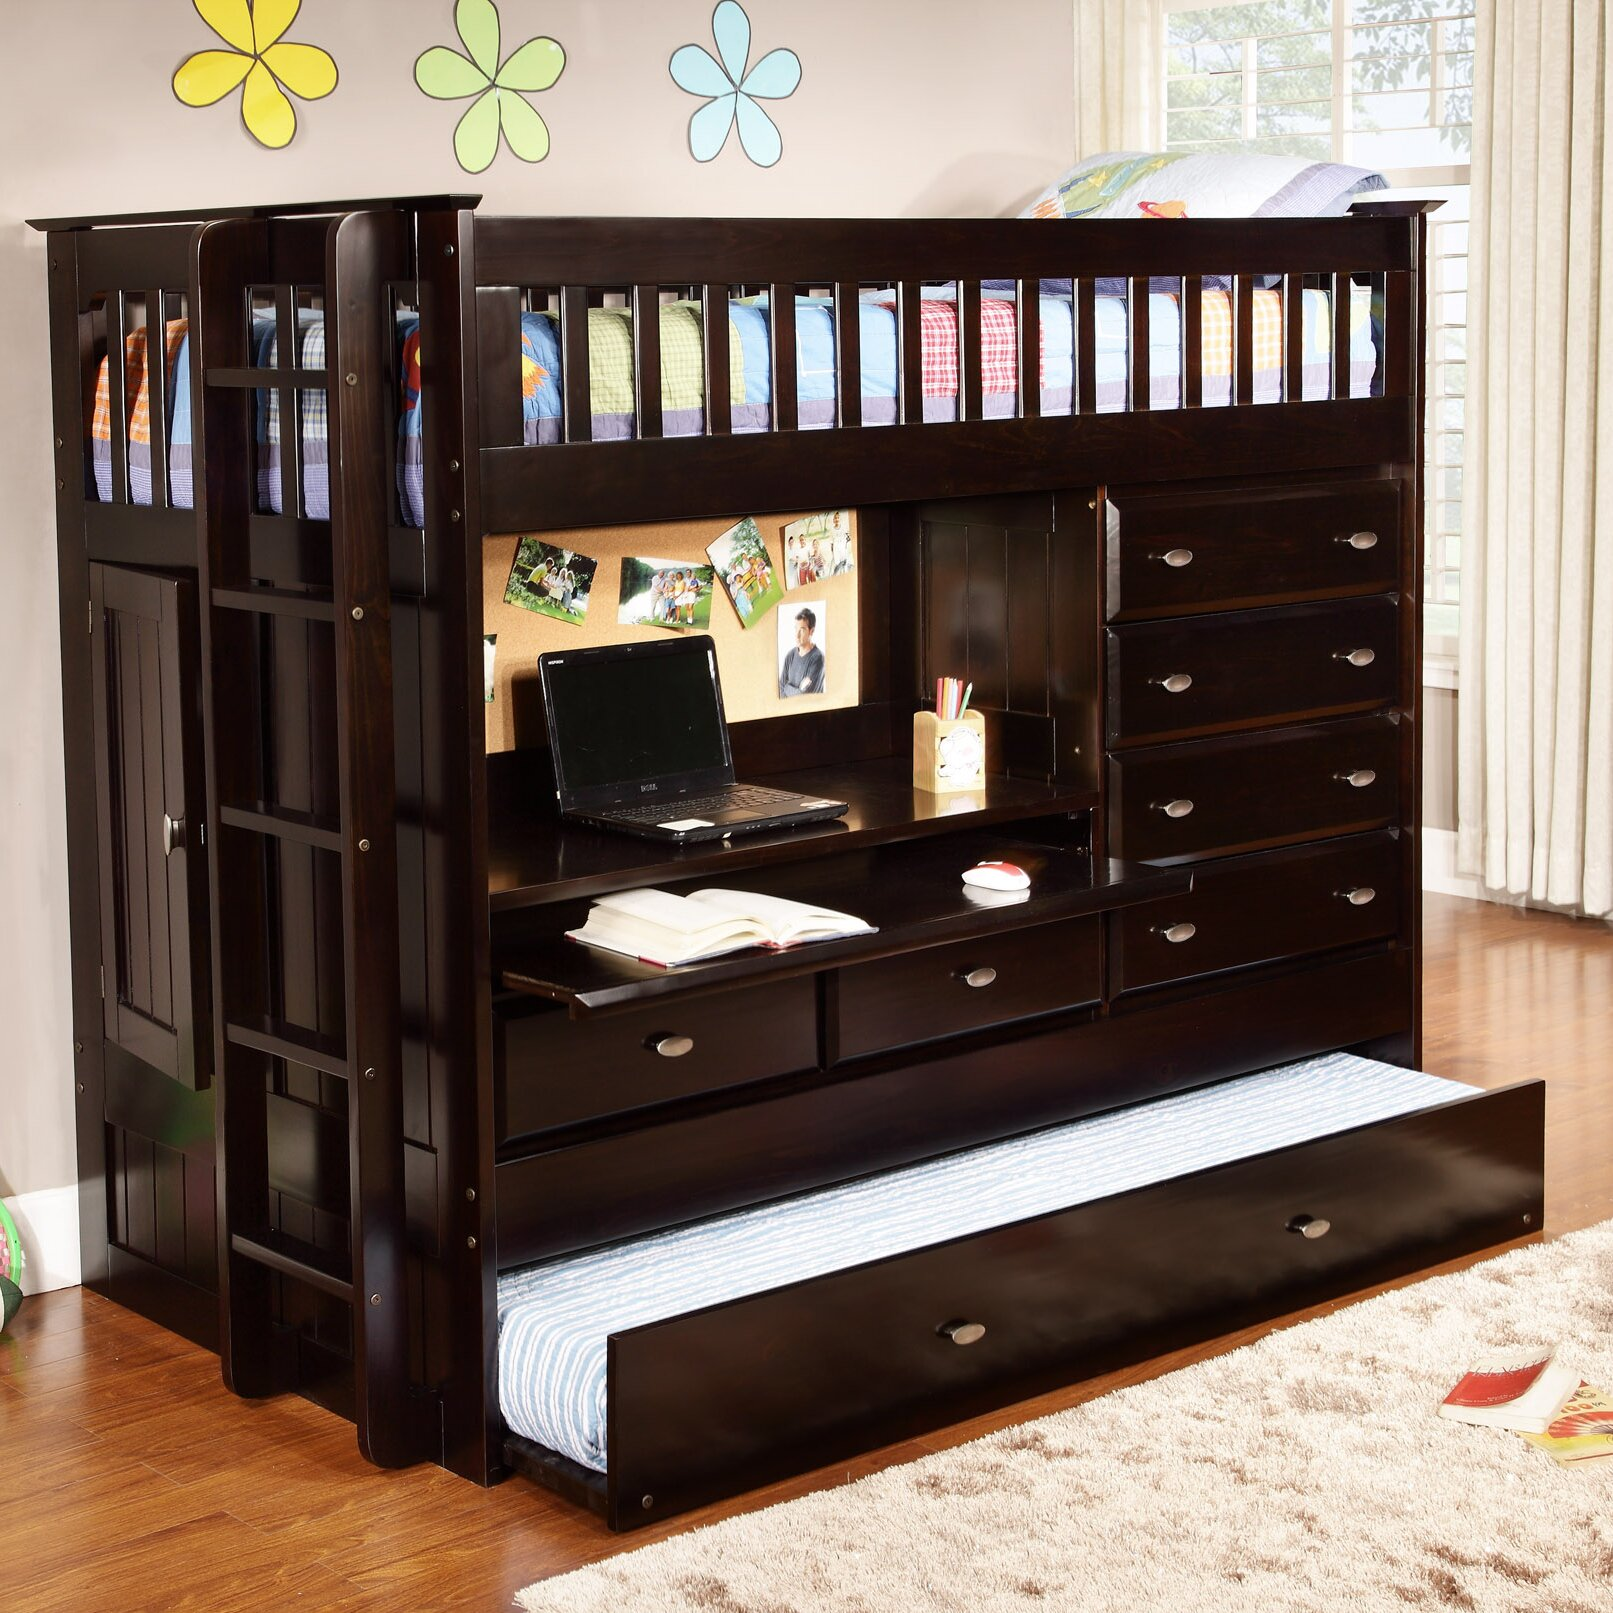 Discovery World Furniture All in e Twin Bunk Bed with